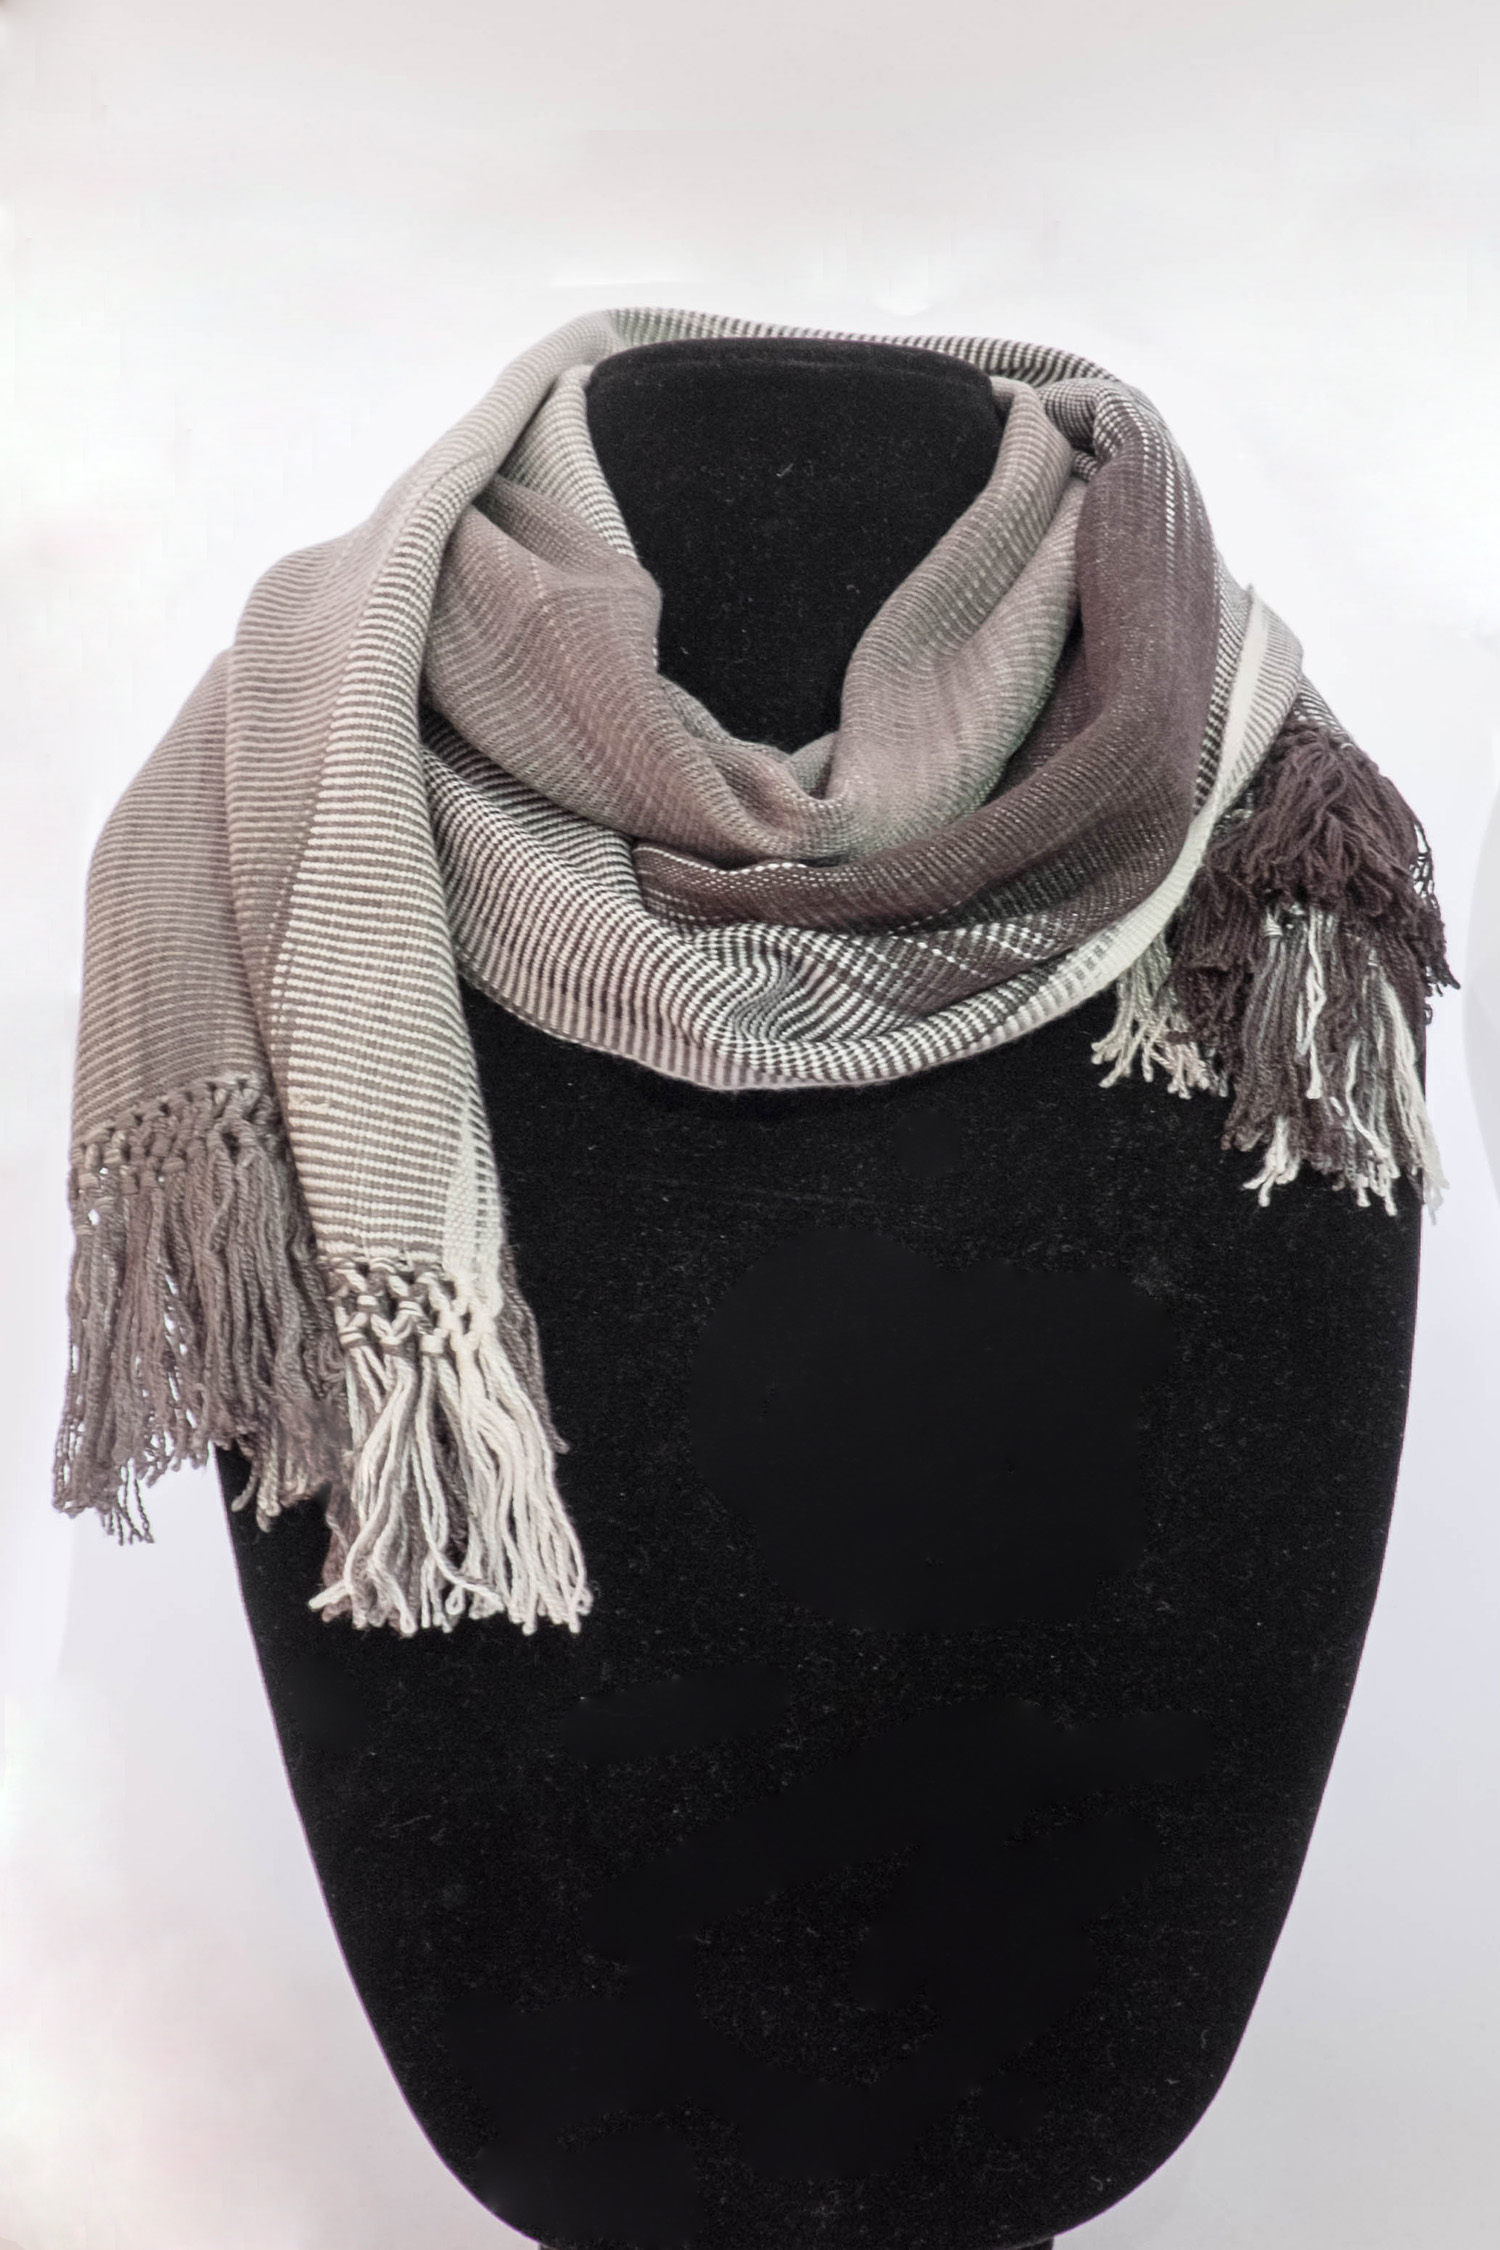 Gray/Black/White Bamboo Scarf     $39.00